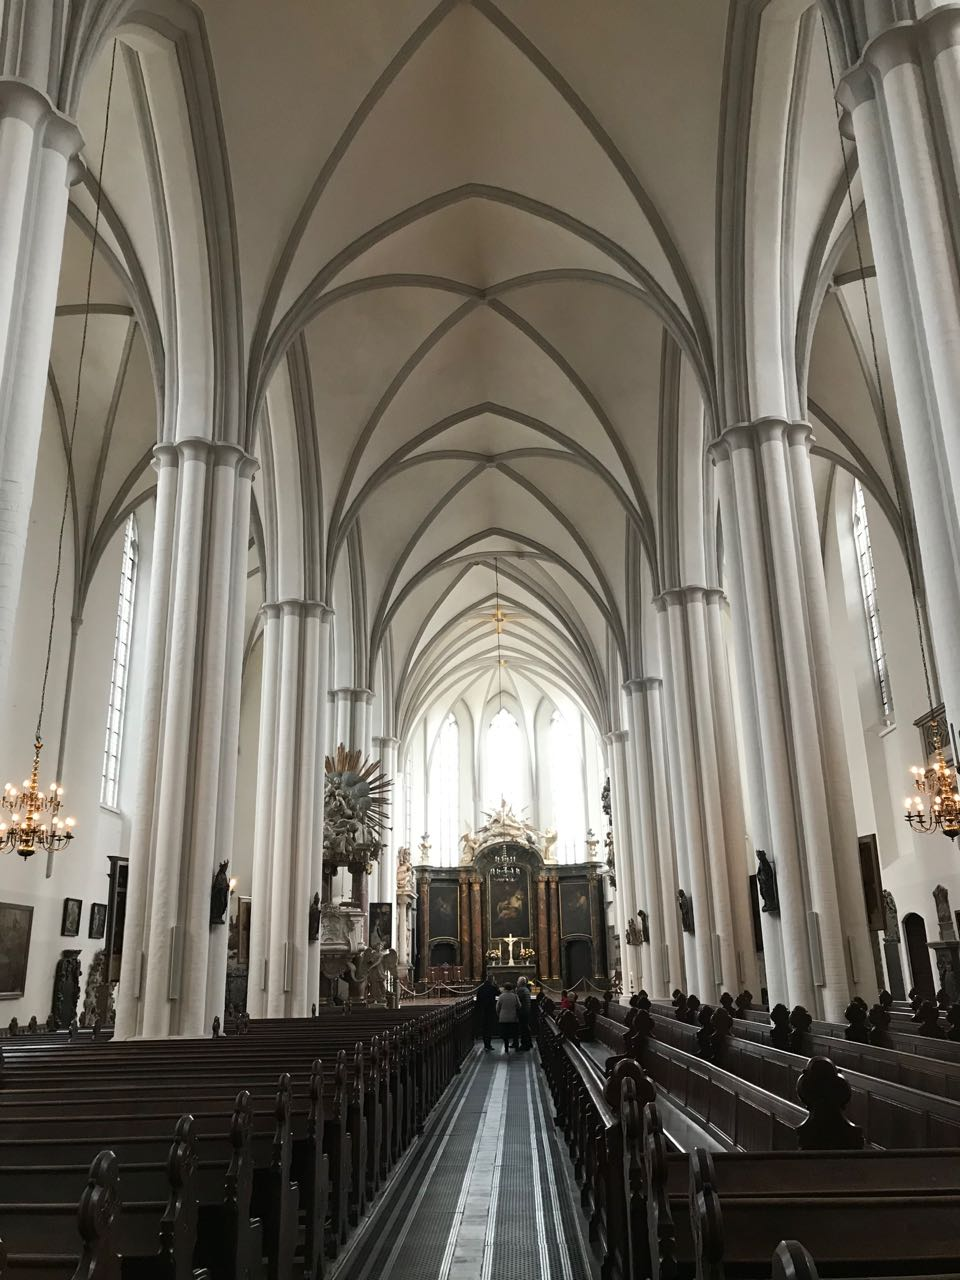 Church interior Berlin.jpg